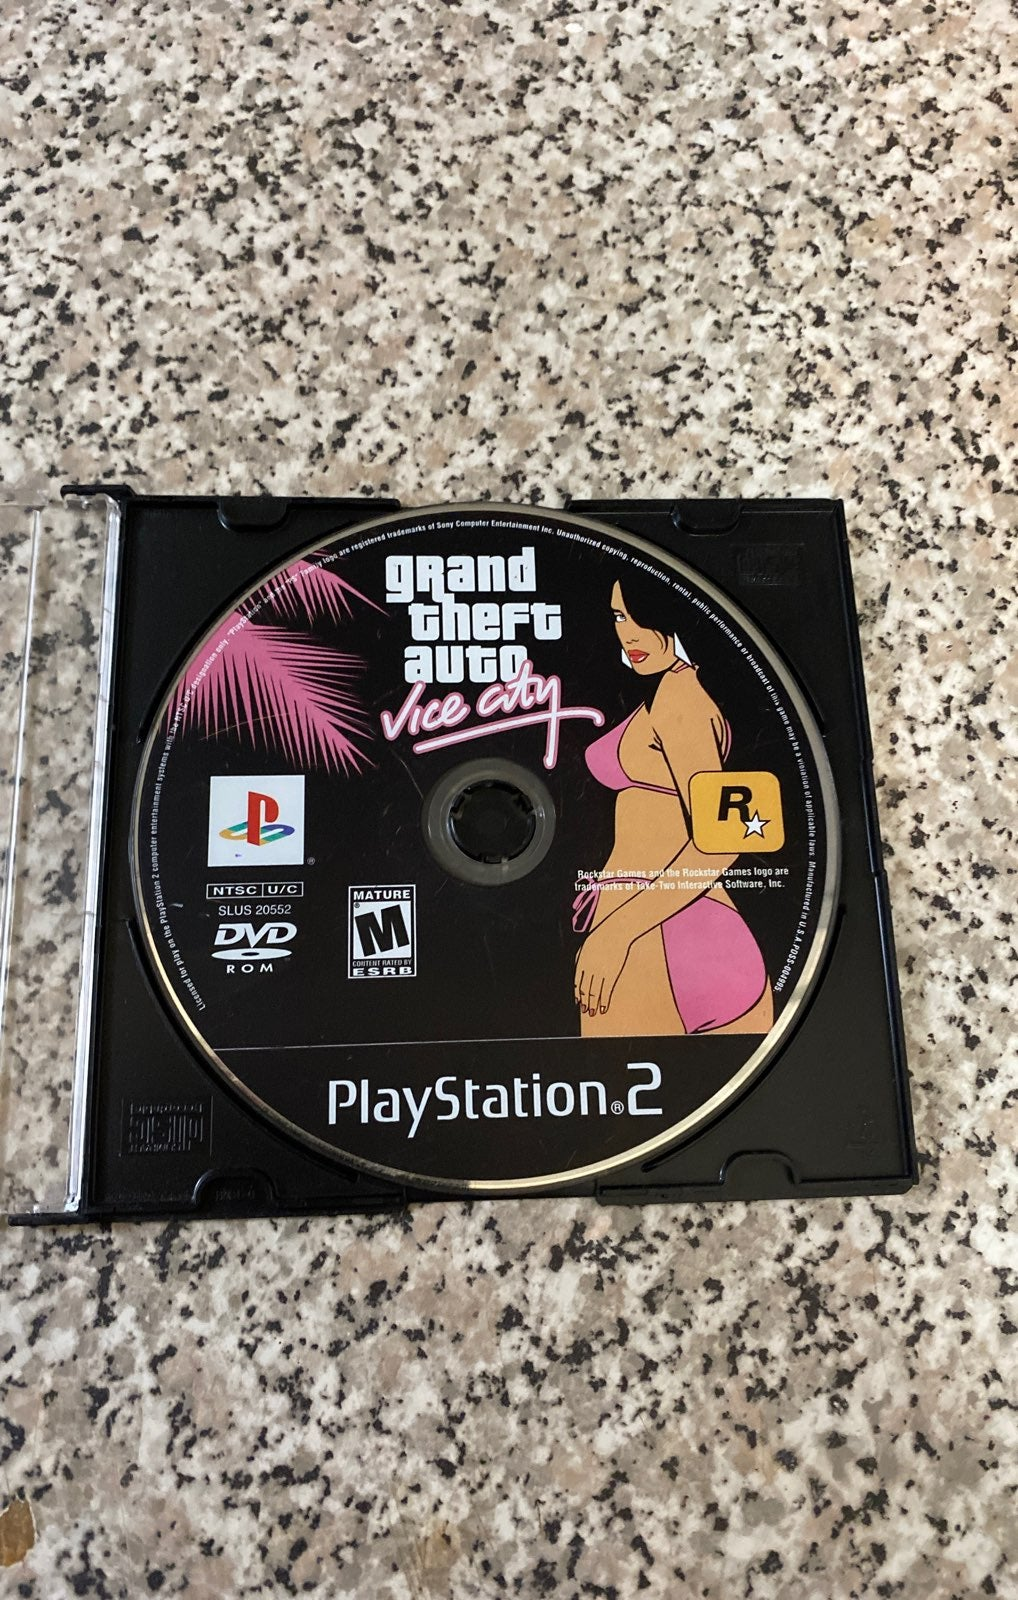 Sony PS2 Grandtheft auto vice city